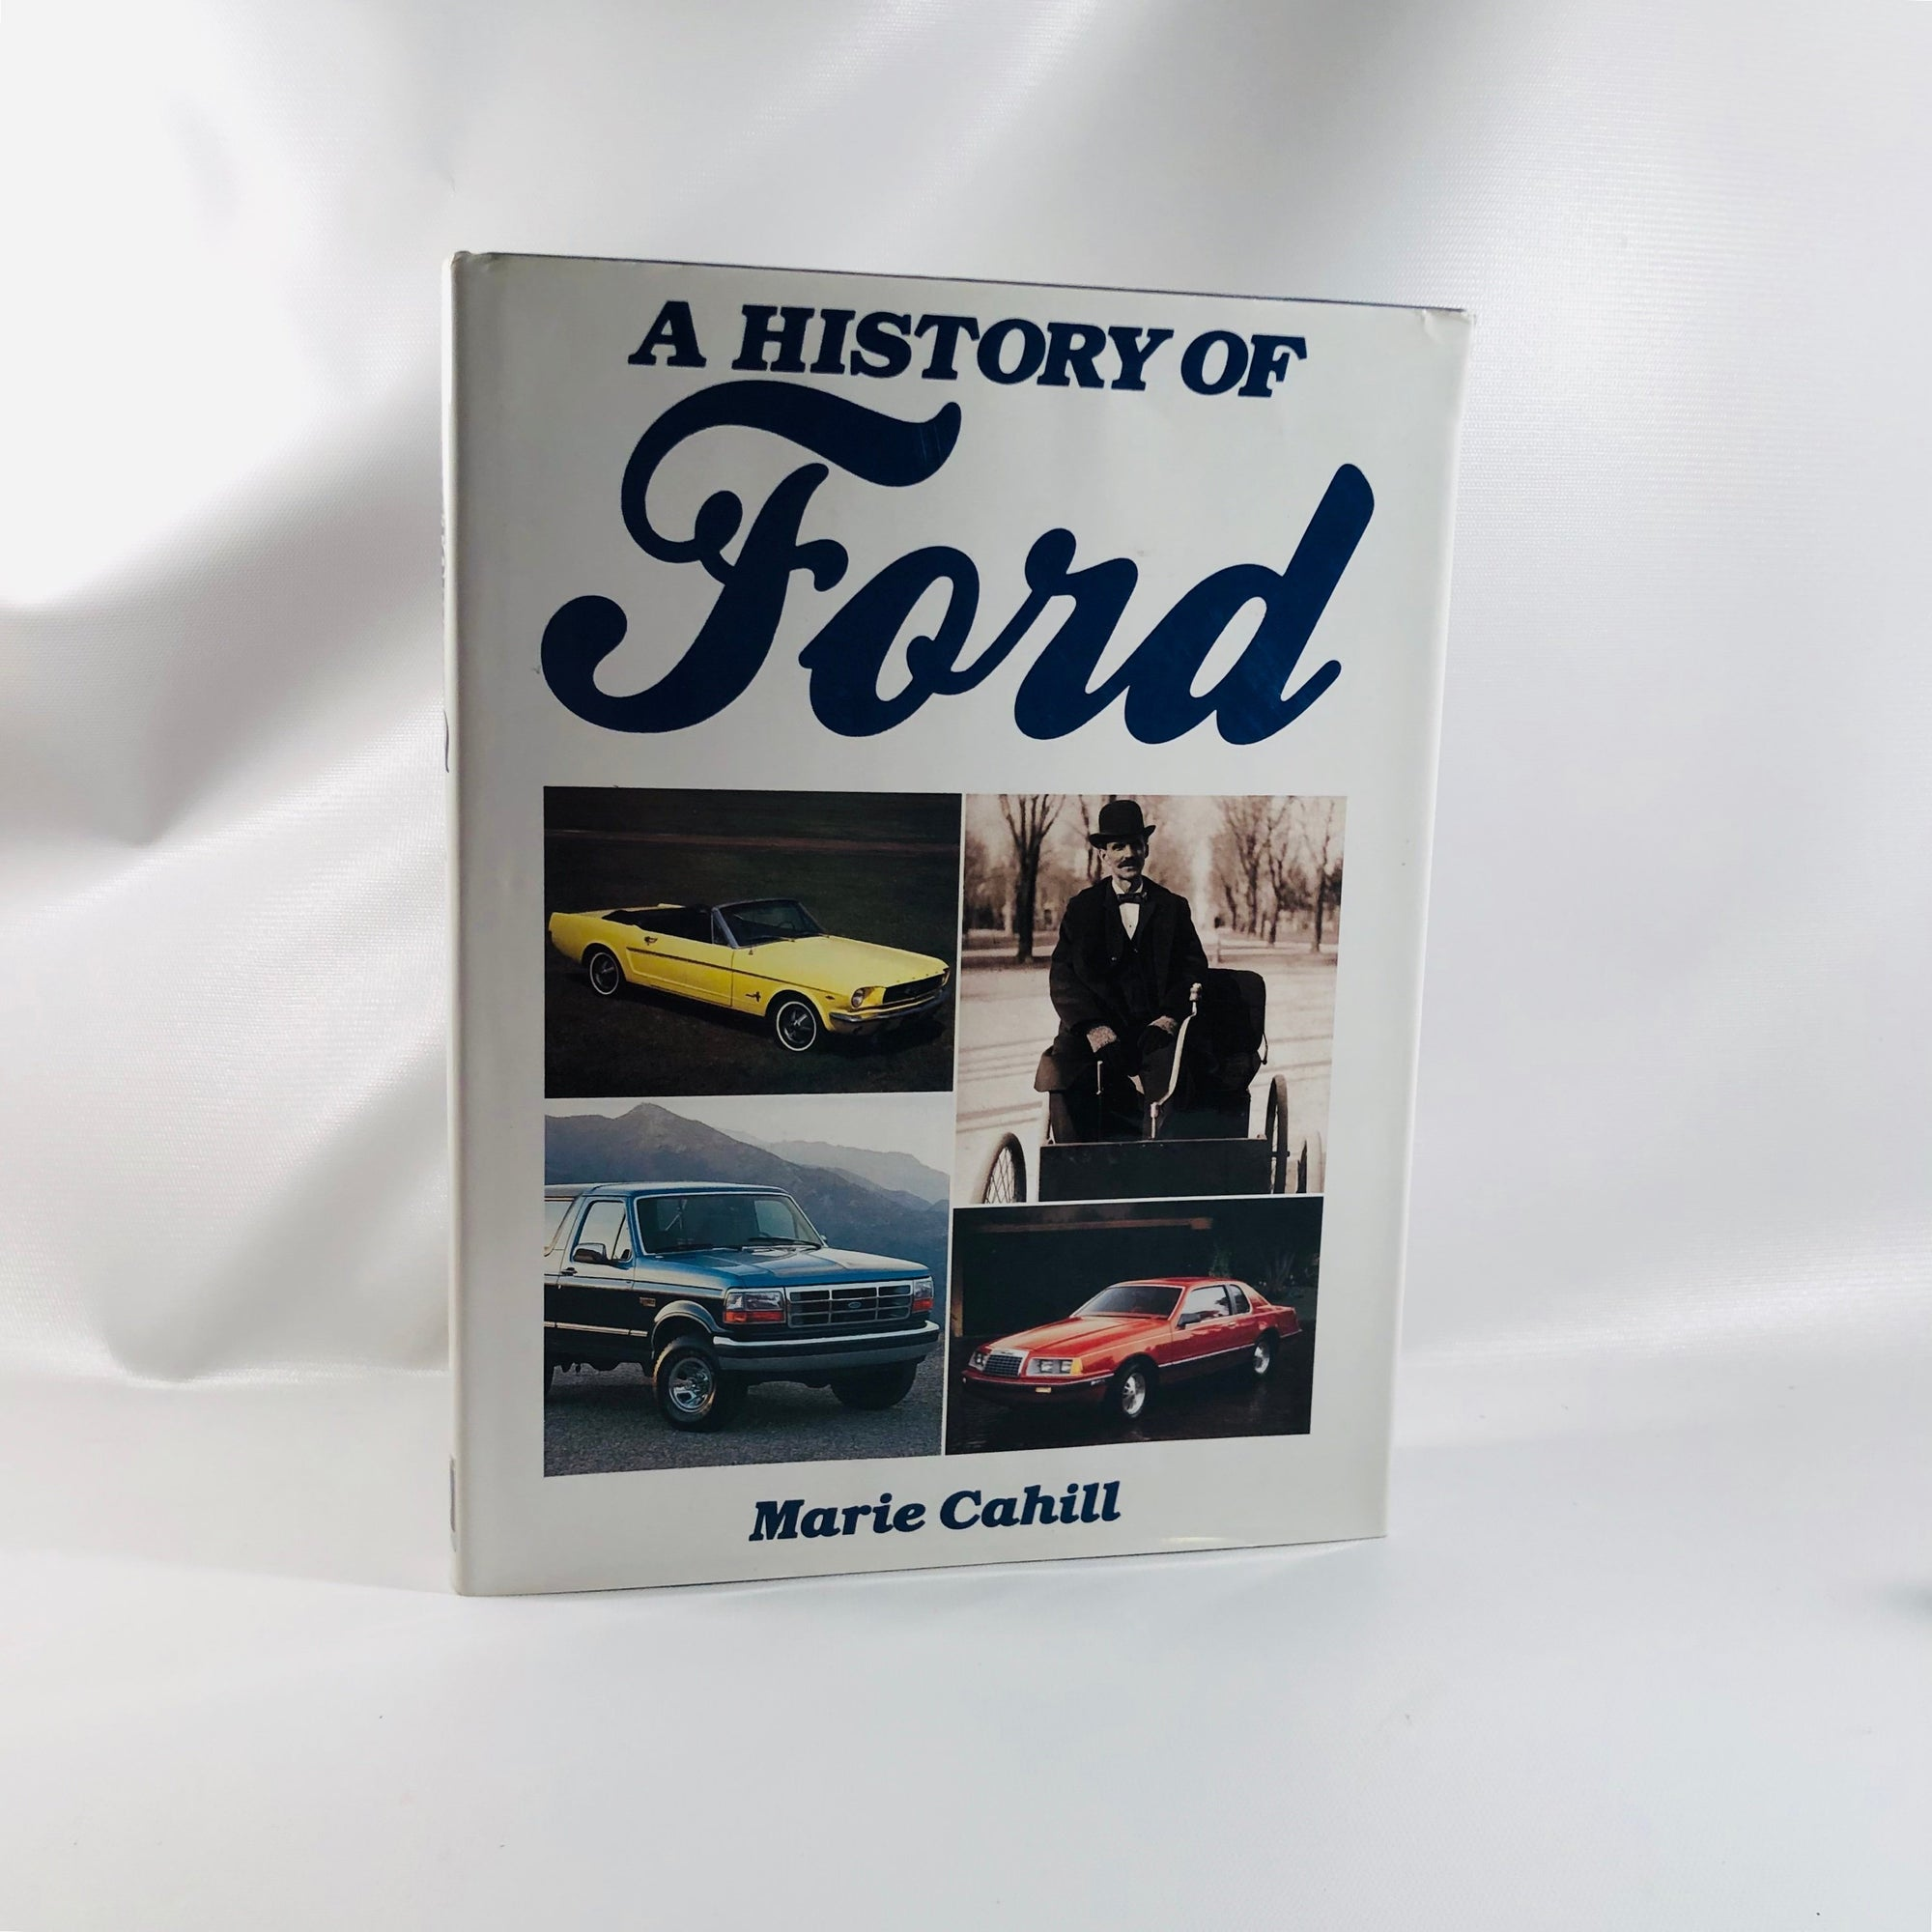 A History of Ford Motor Company by Marie Cahill 1992 Vintage Car Book